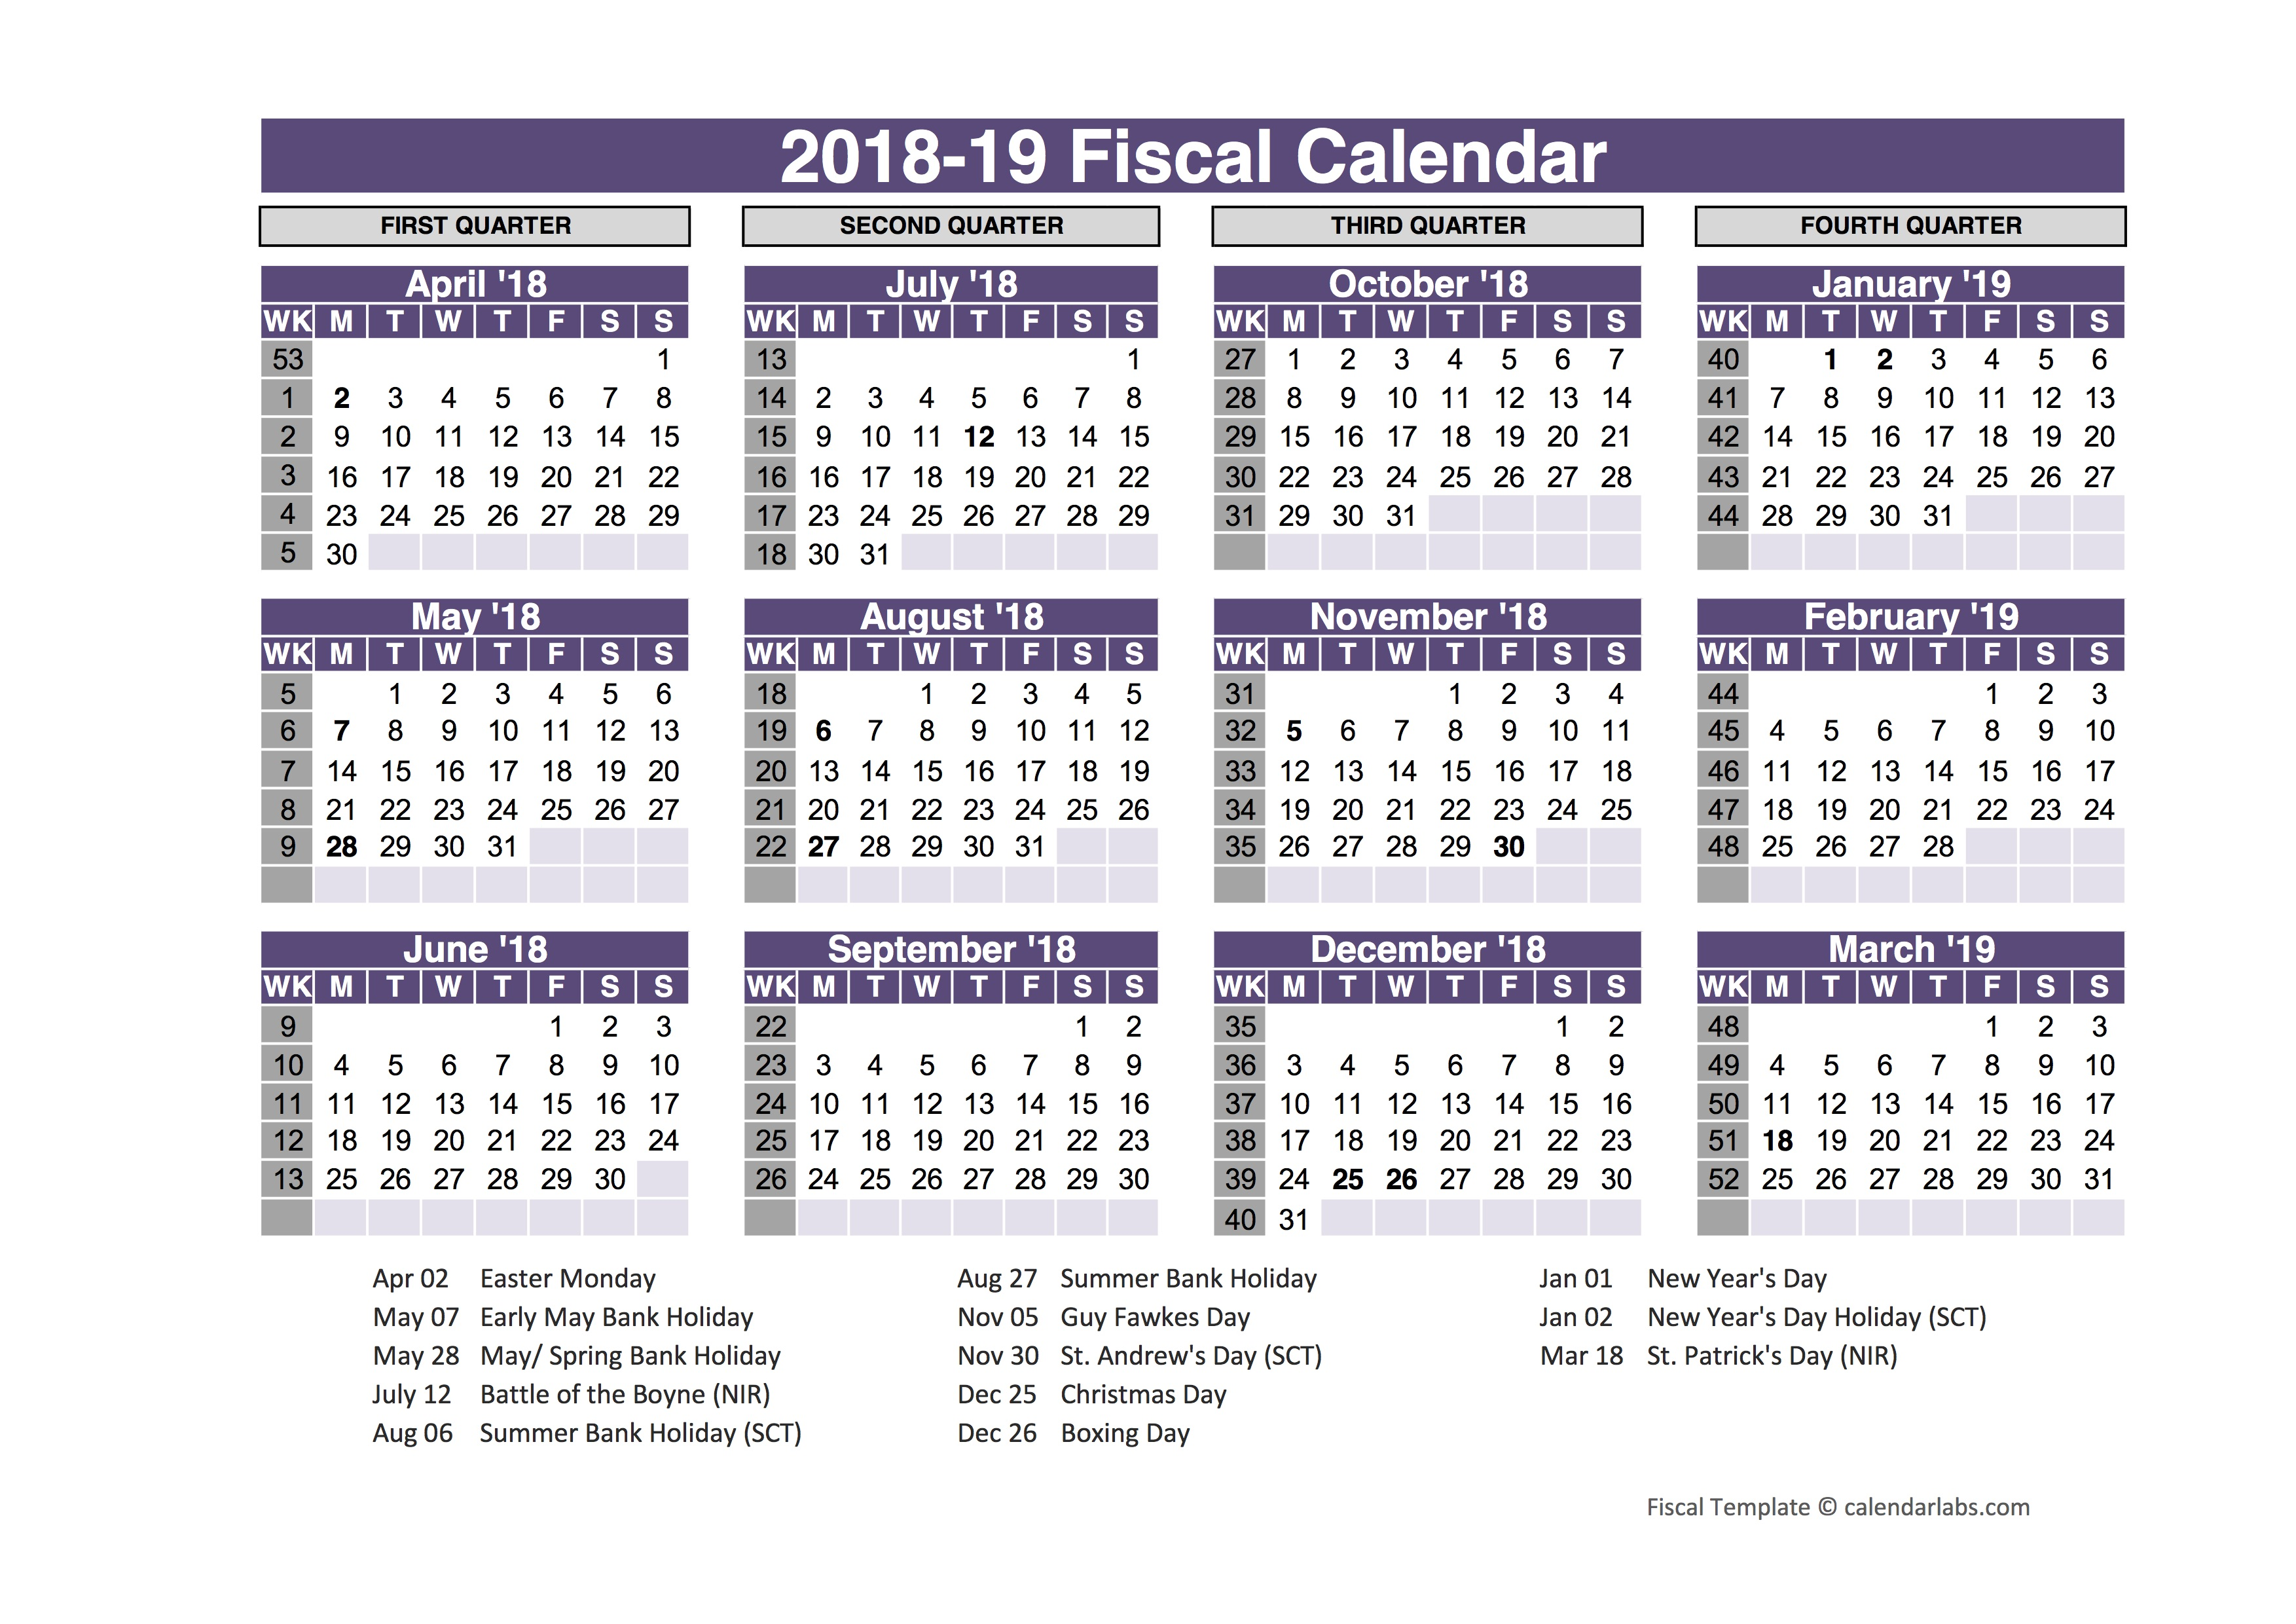 UK Fiscal Calendar Template 2018-19 - Free Printable Templates